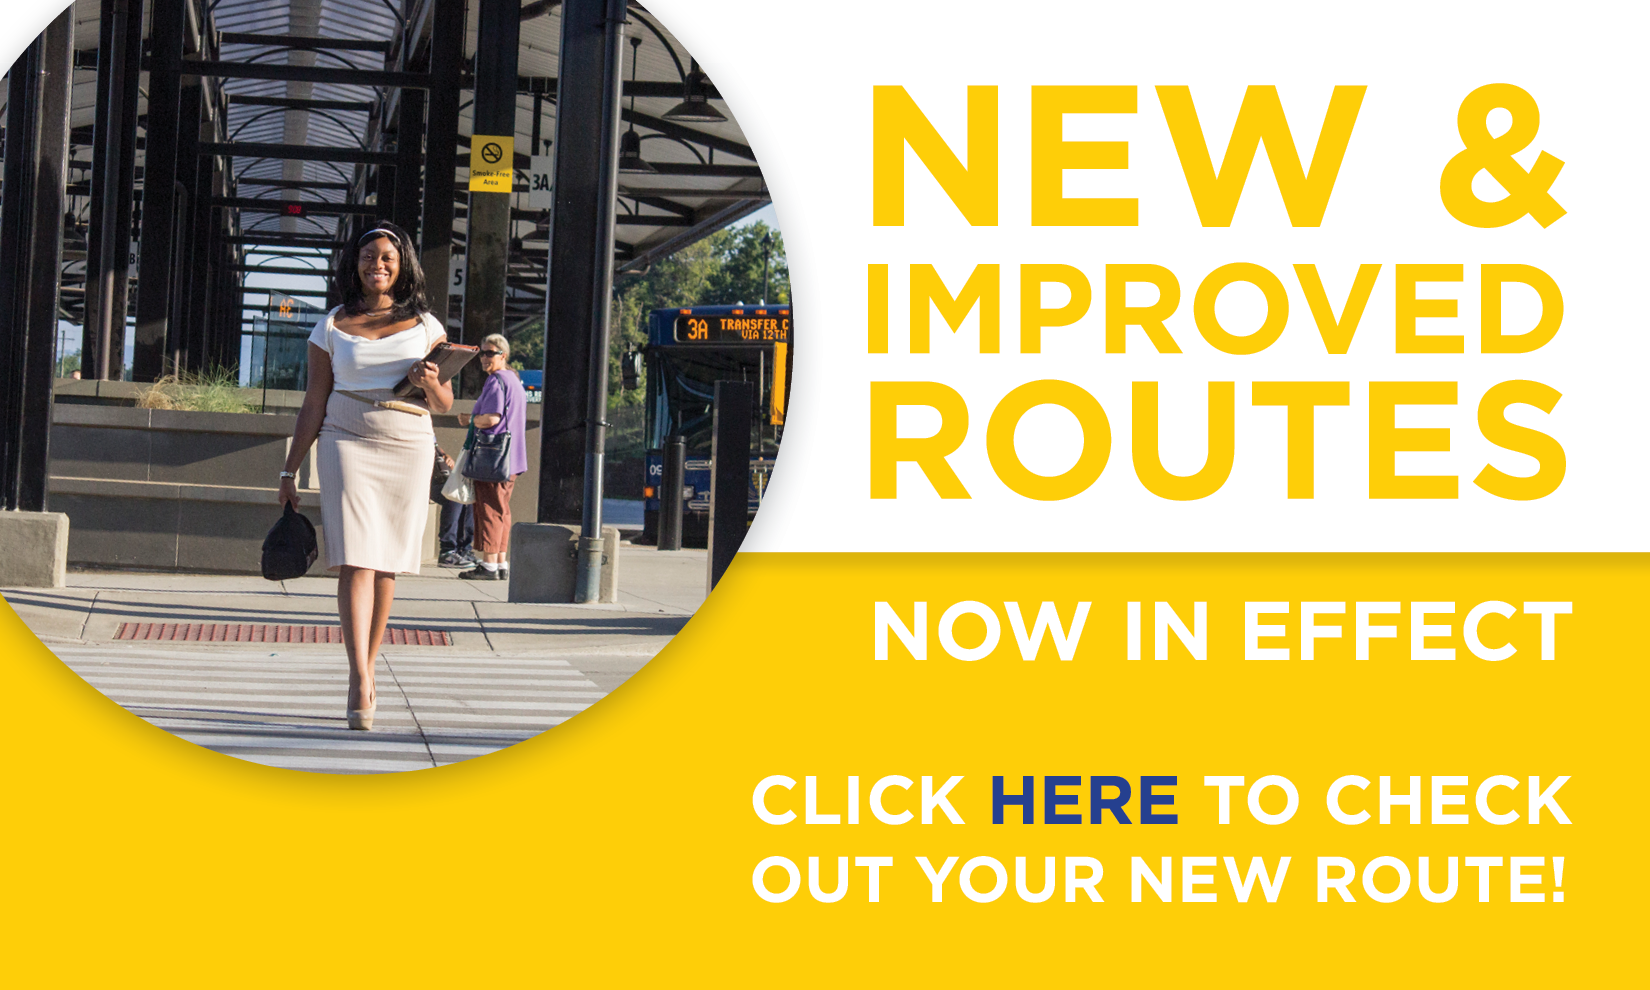 Click here to check out your new route